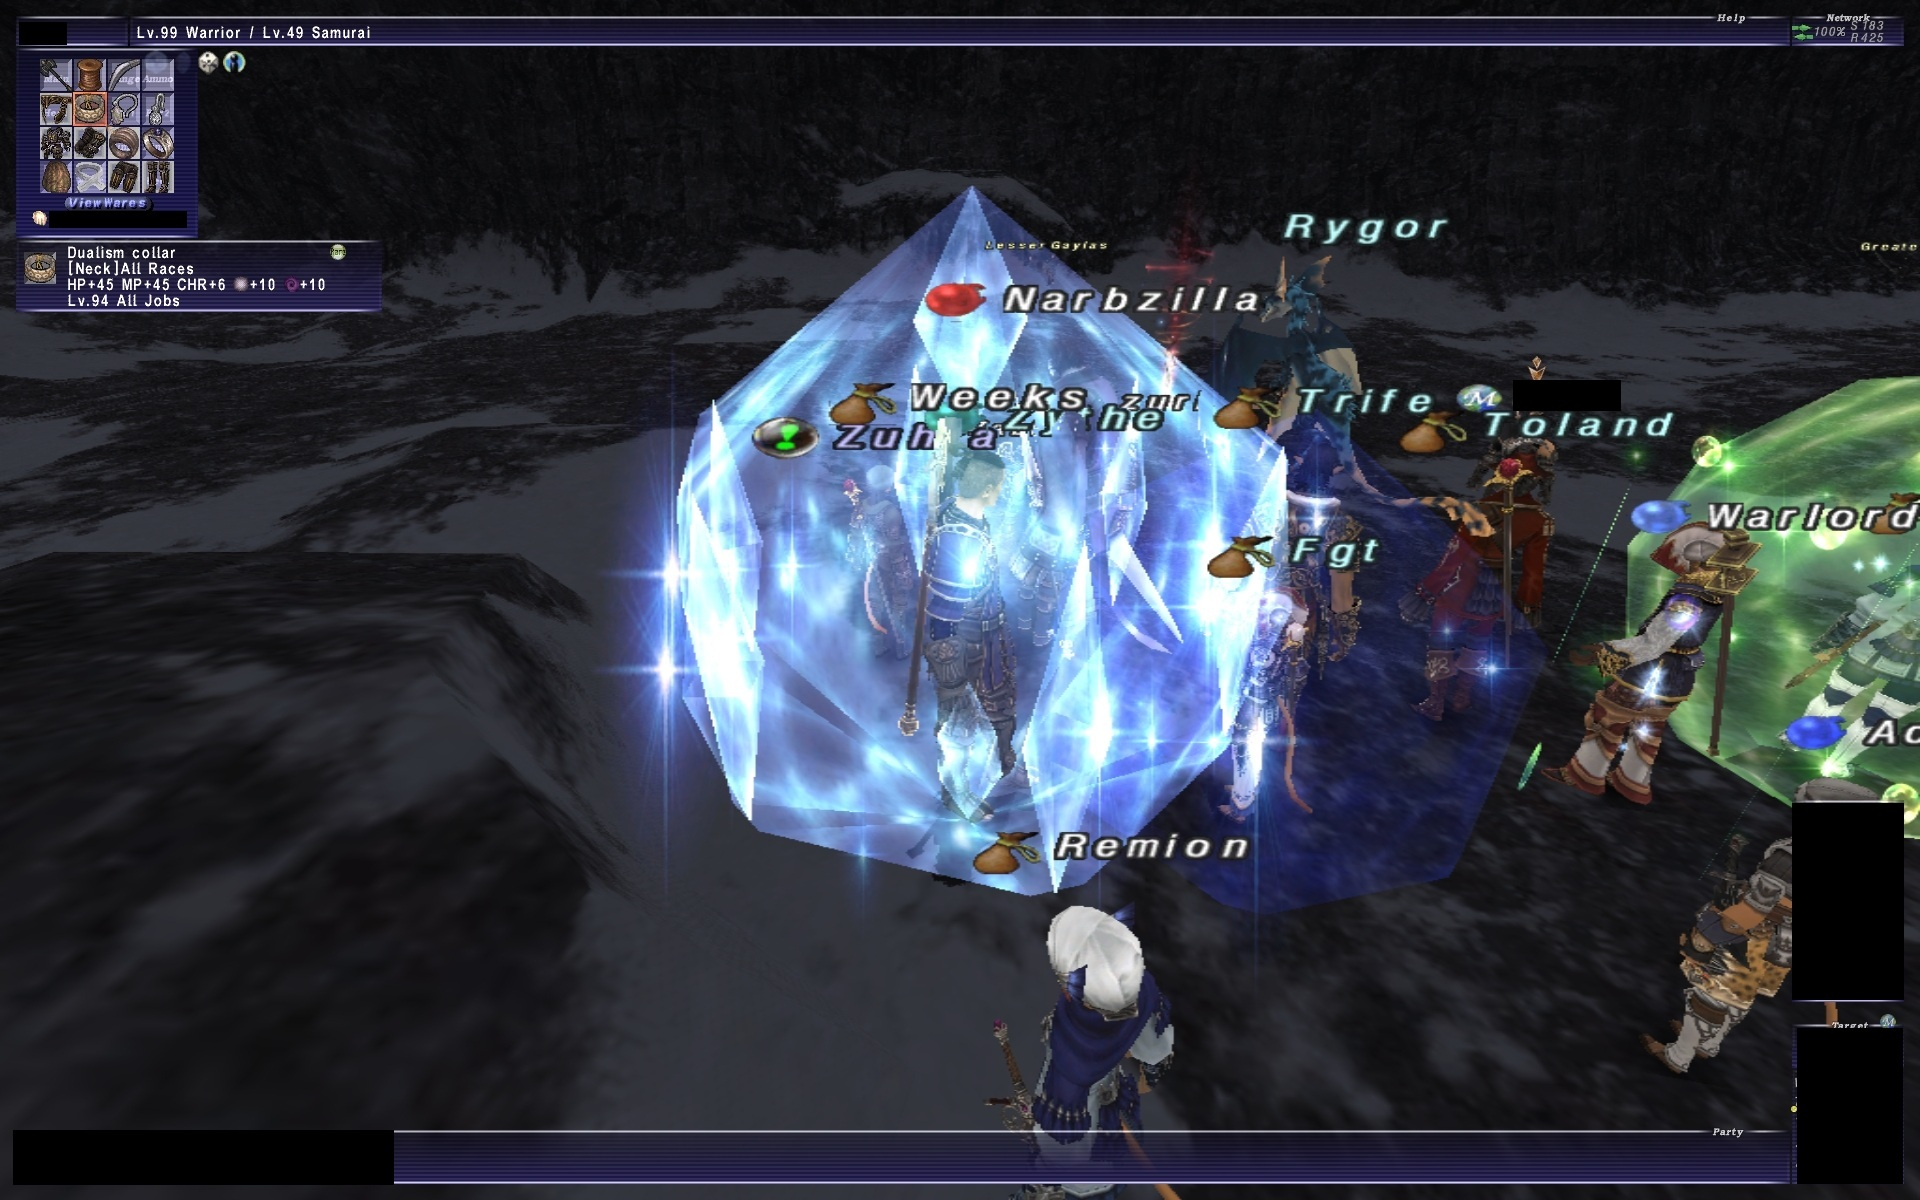 weeks ffxi your bear also thread time spend fucks unemployed paying this economy taxes rest players sucking would without cock addictions german full about they money their commenting plays into wouldnt were social angry xxiii player guys rude being trying impress decade almost gimpconfusedwtf jobs enough well playing started dont